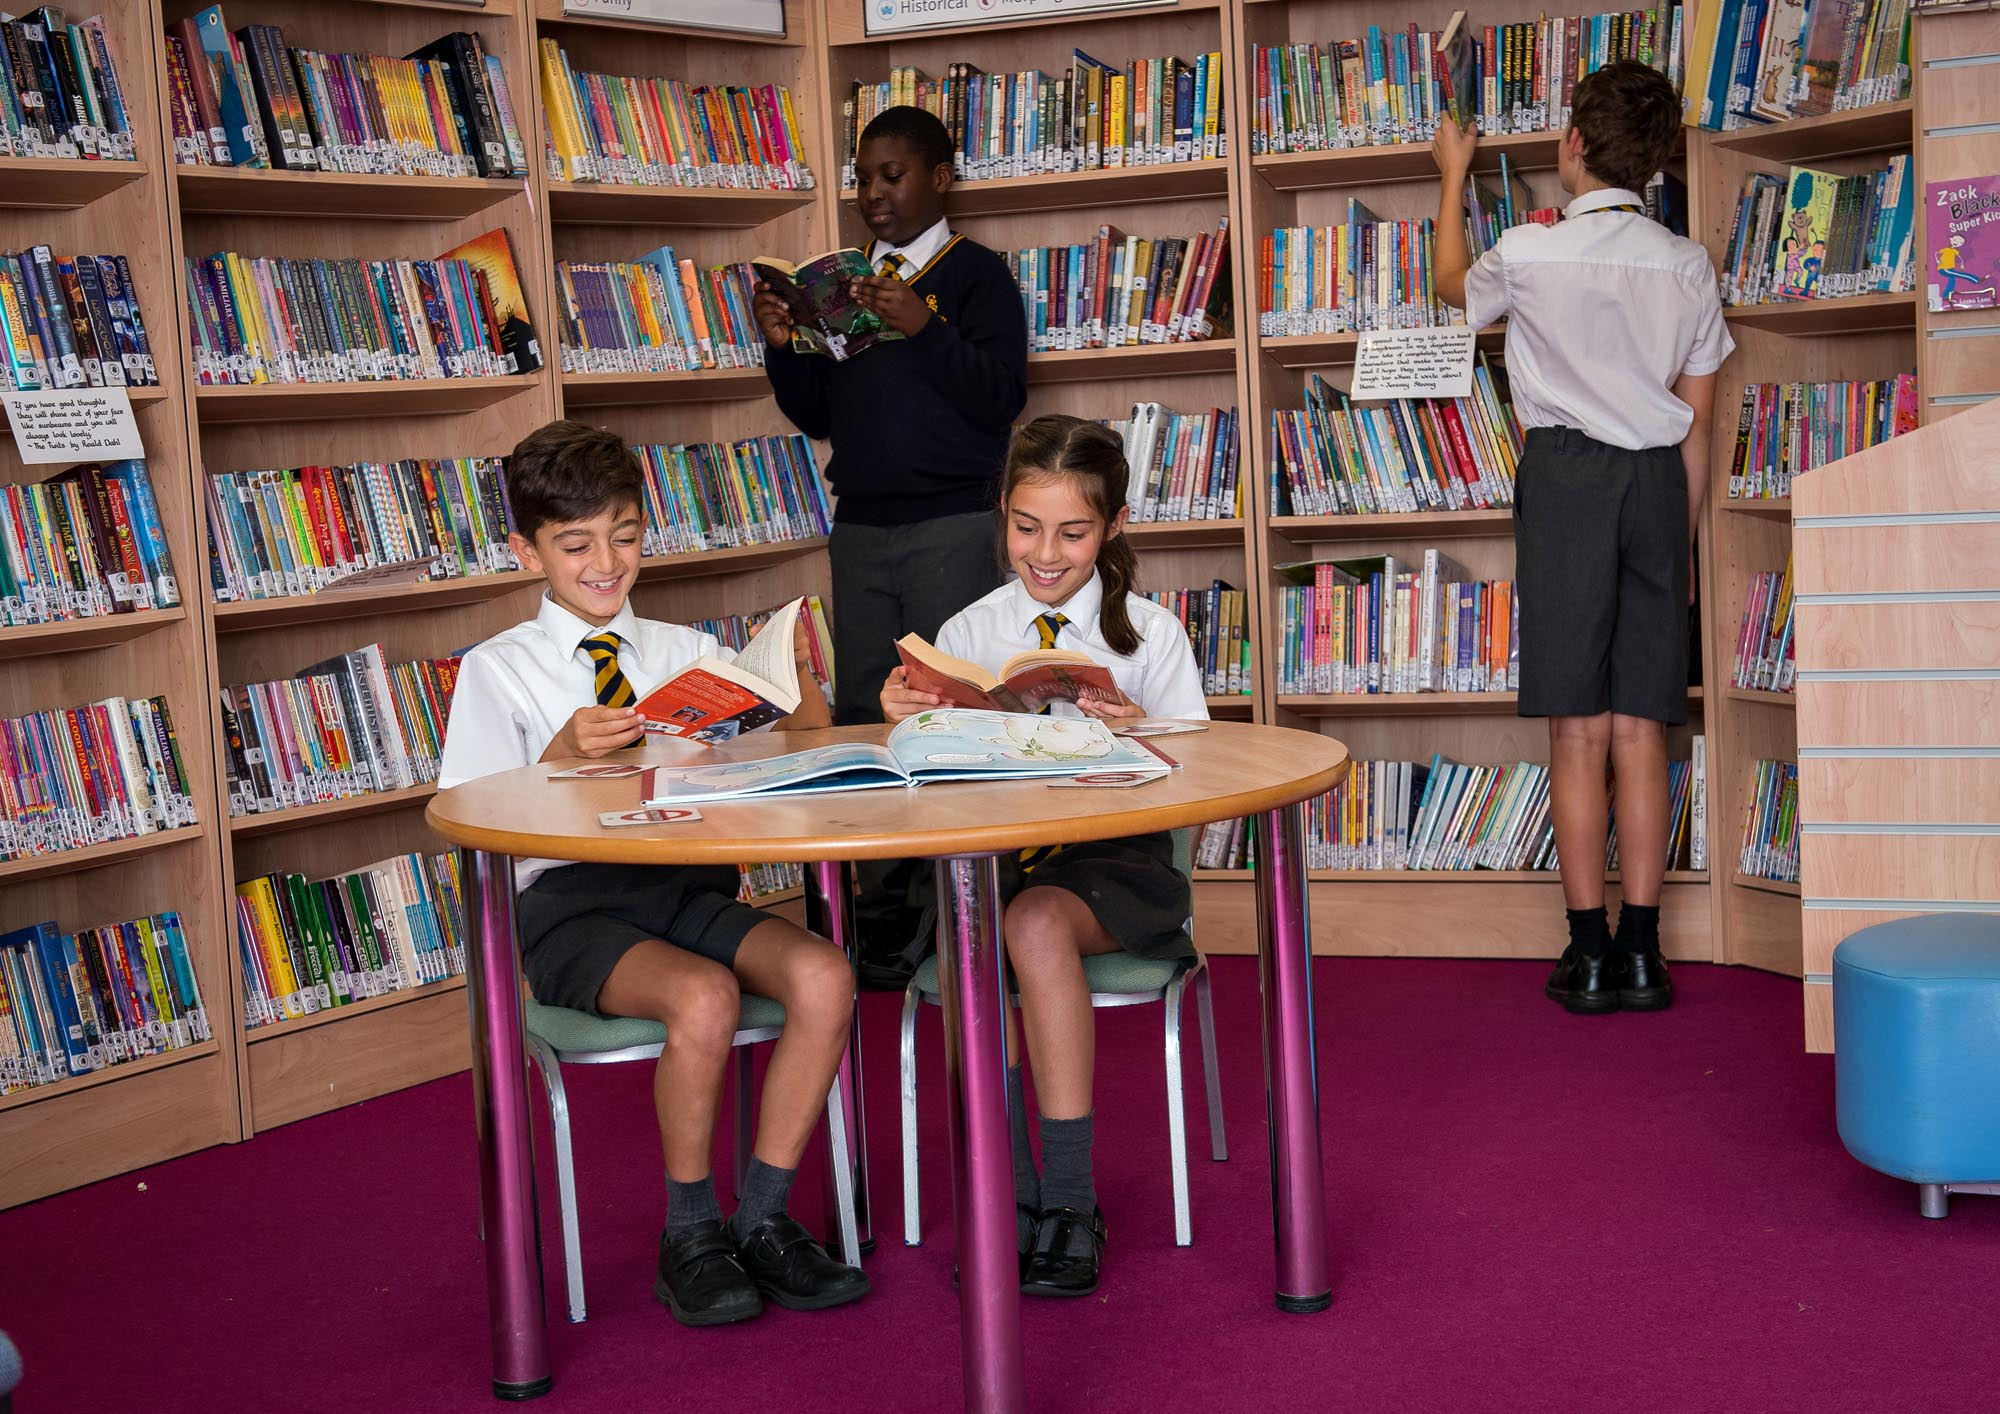 Children in the school library